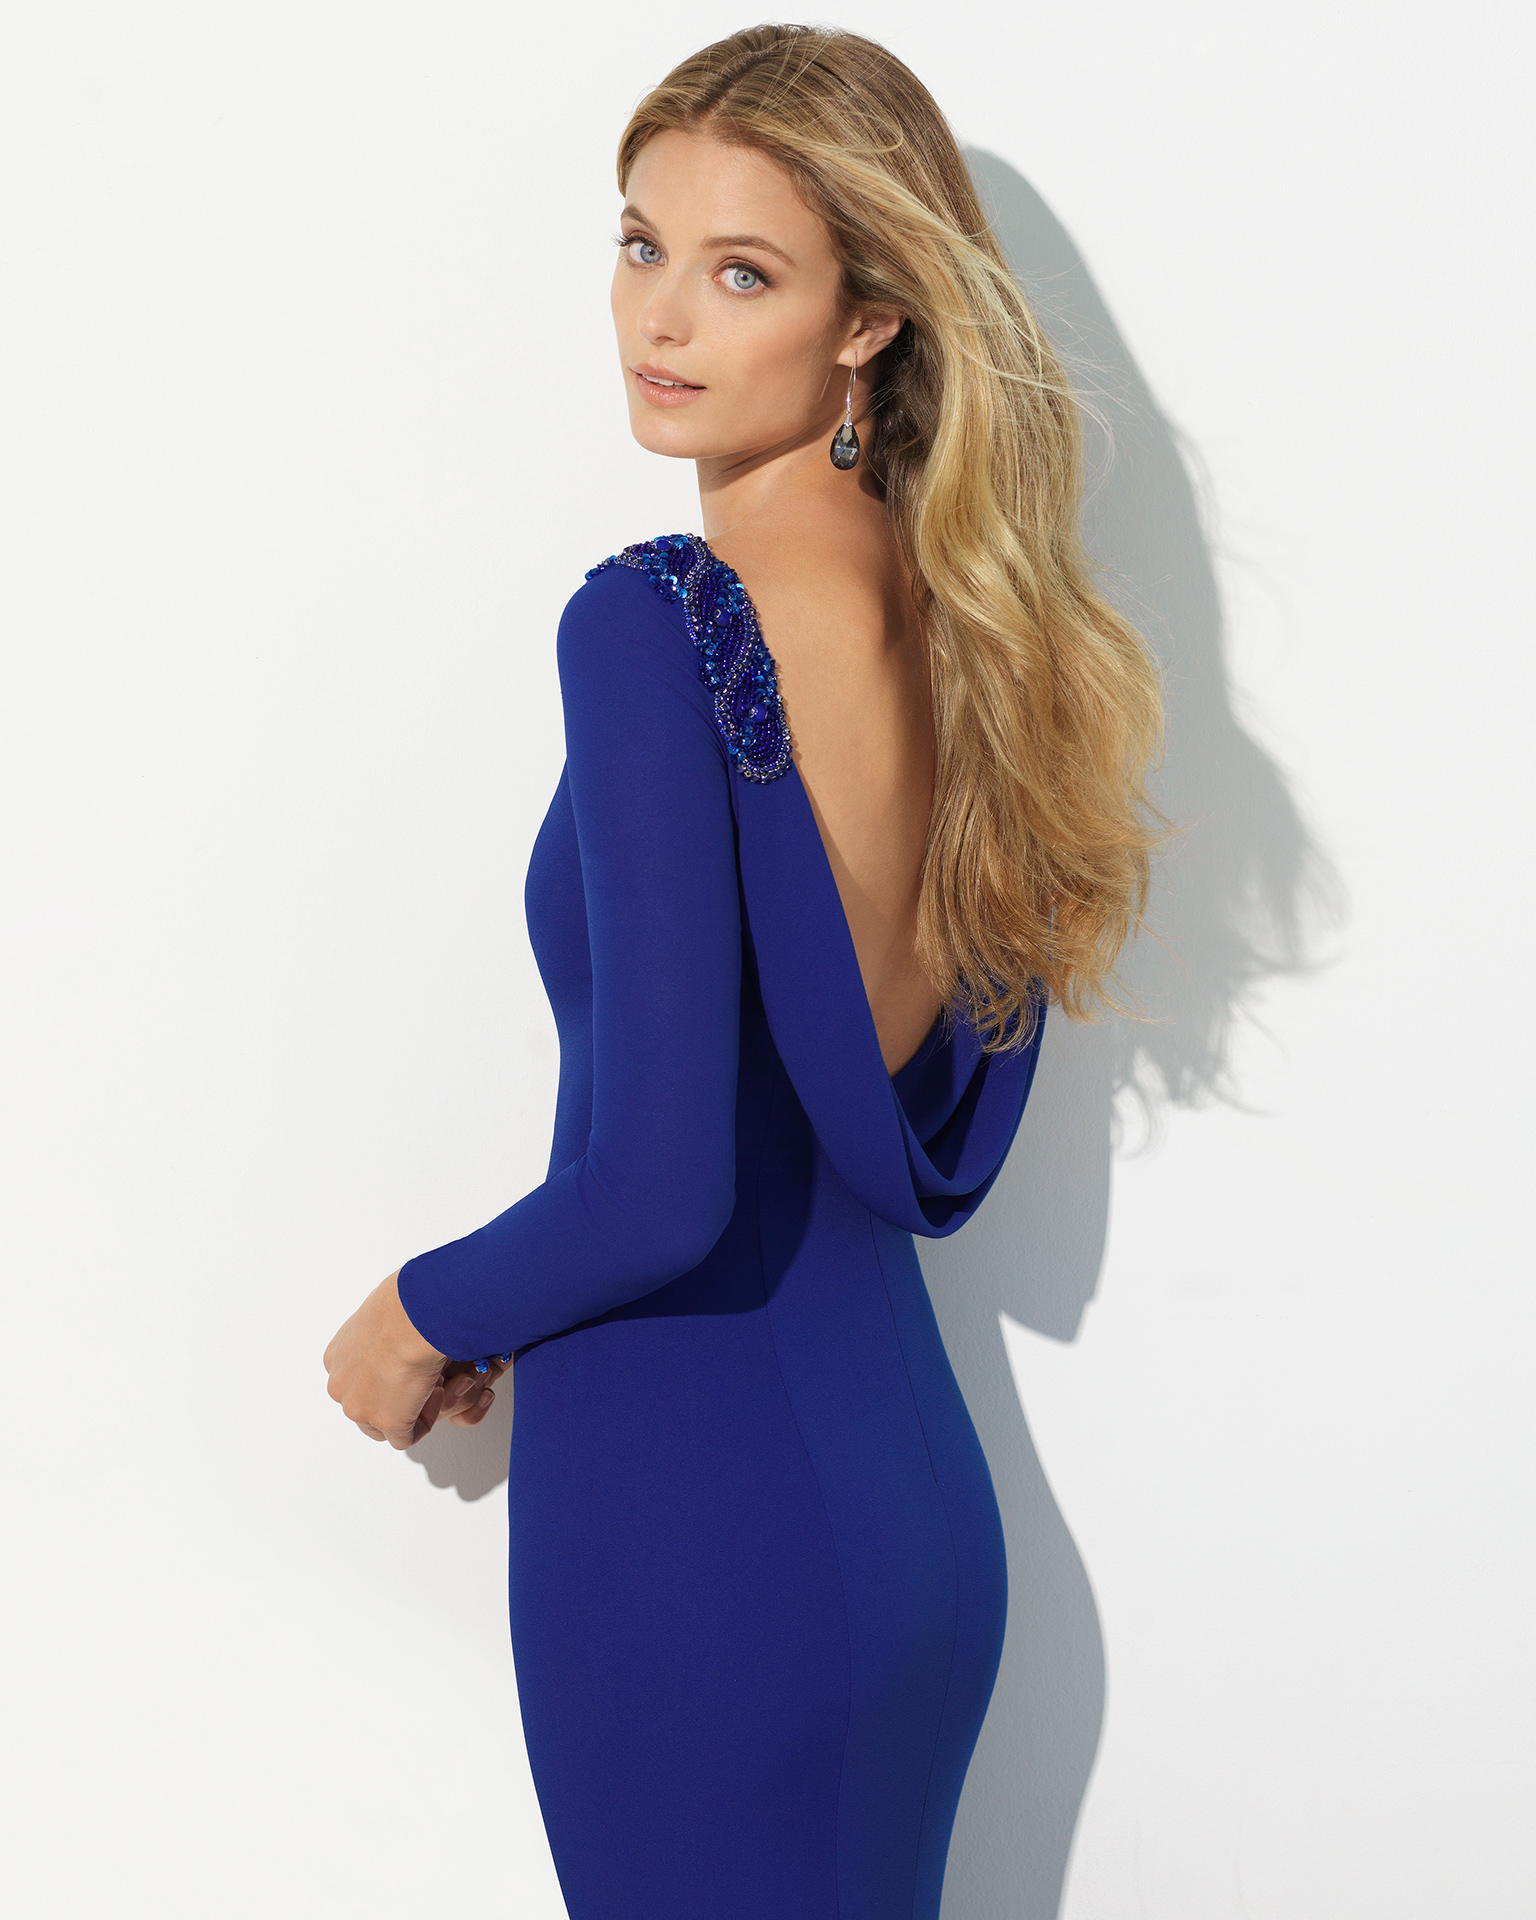 Crepe cocktail dress with long sleeves, bateau neckline, cape back and beading on shoulders. Available in cobalt, red, green, navy blue and coral. 2018 FIESTA AIRE BARCELONA Collection.